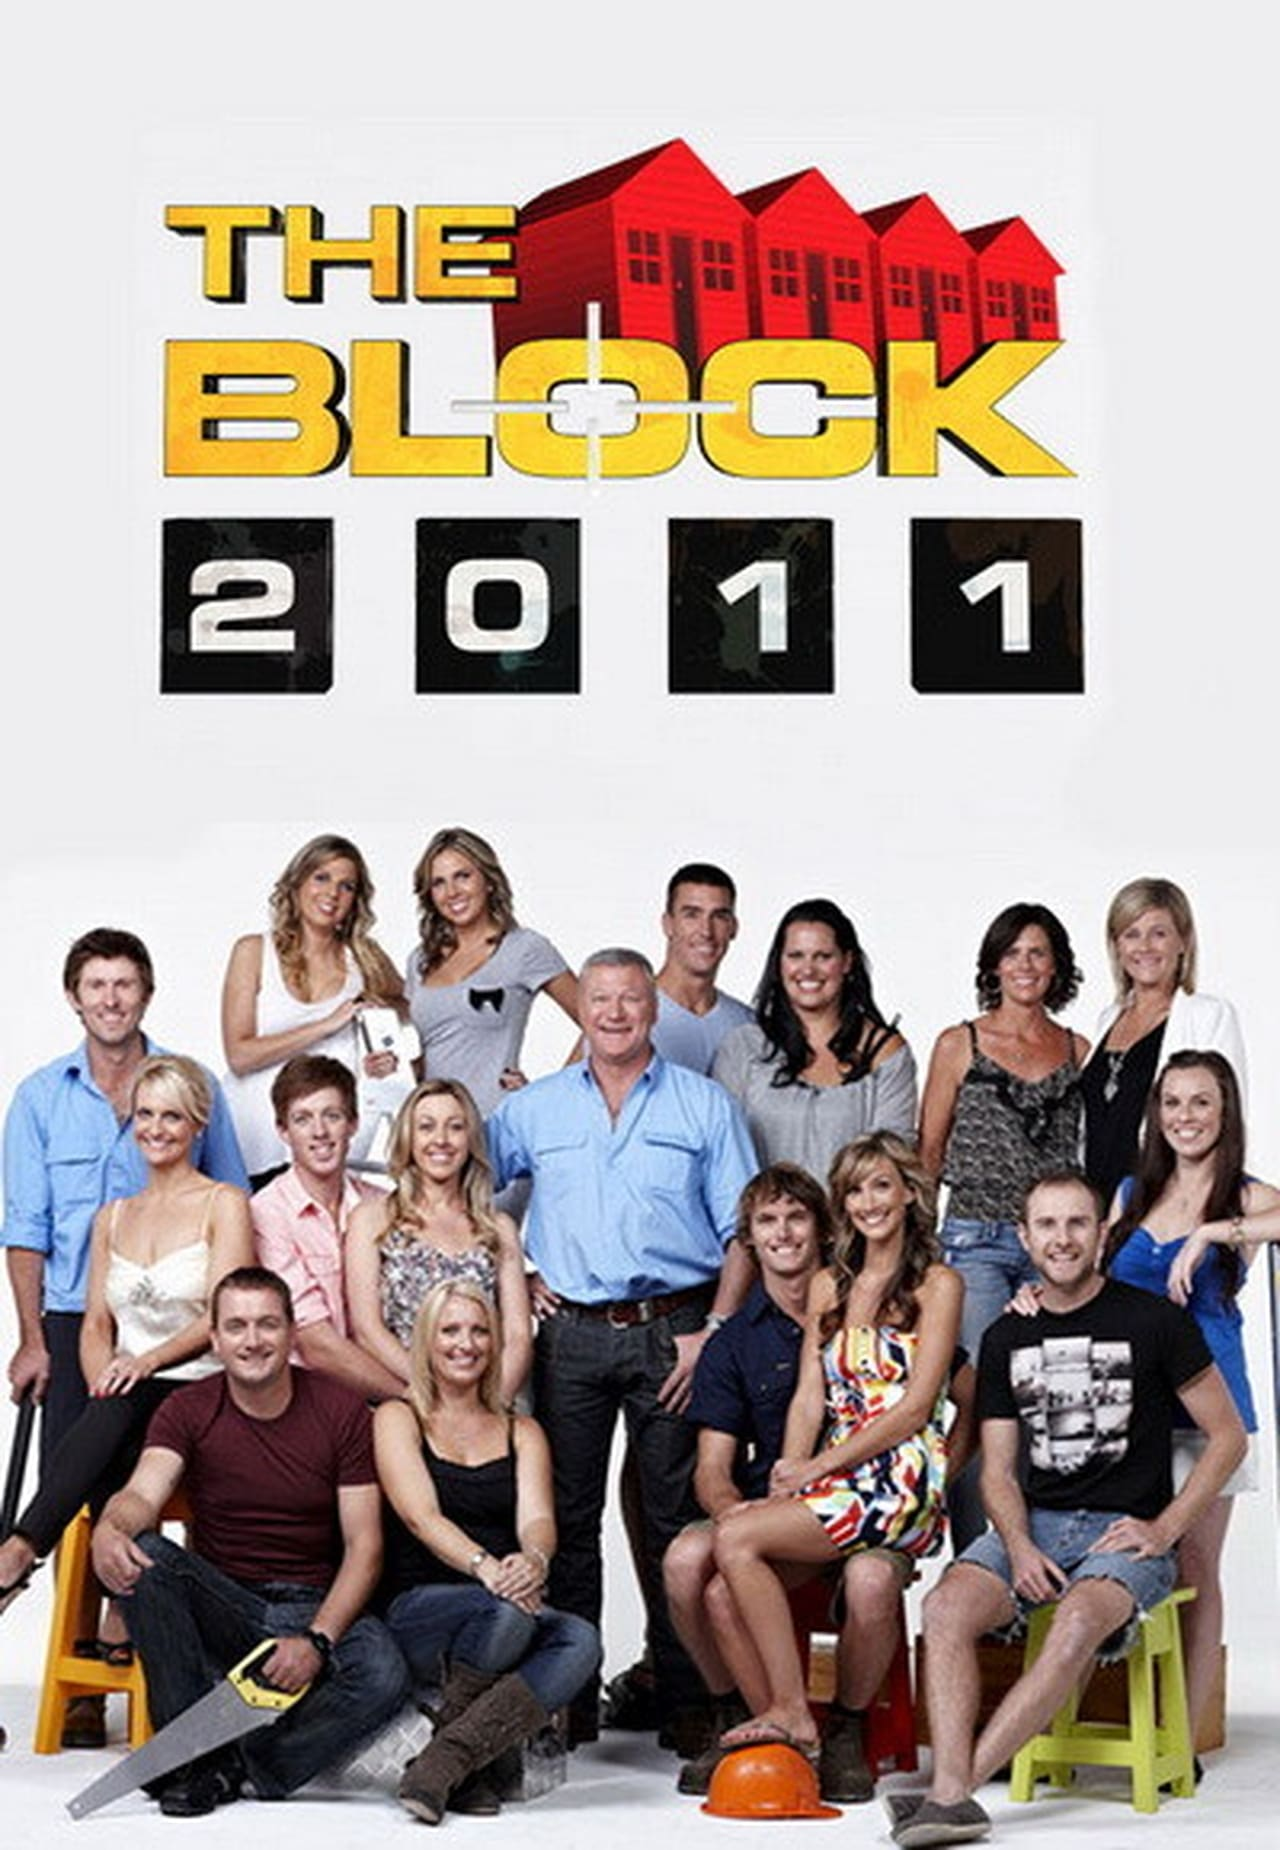 Putlocker The Block Season 4 (2011)